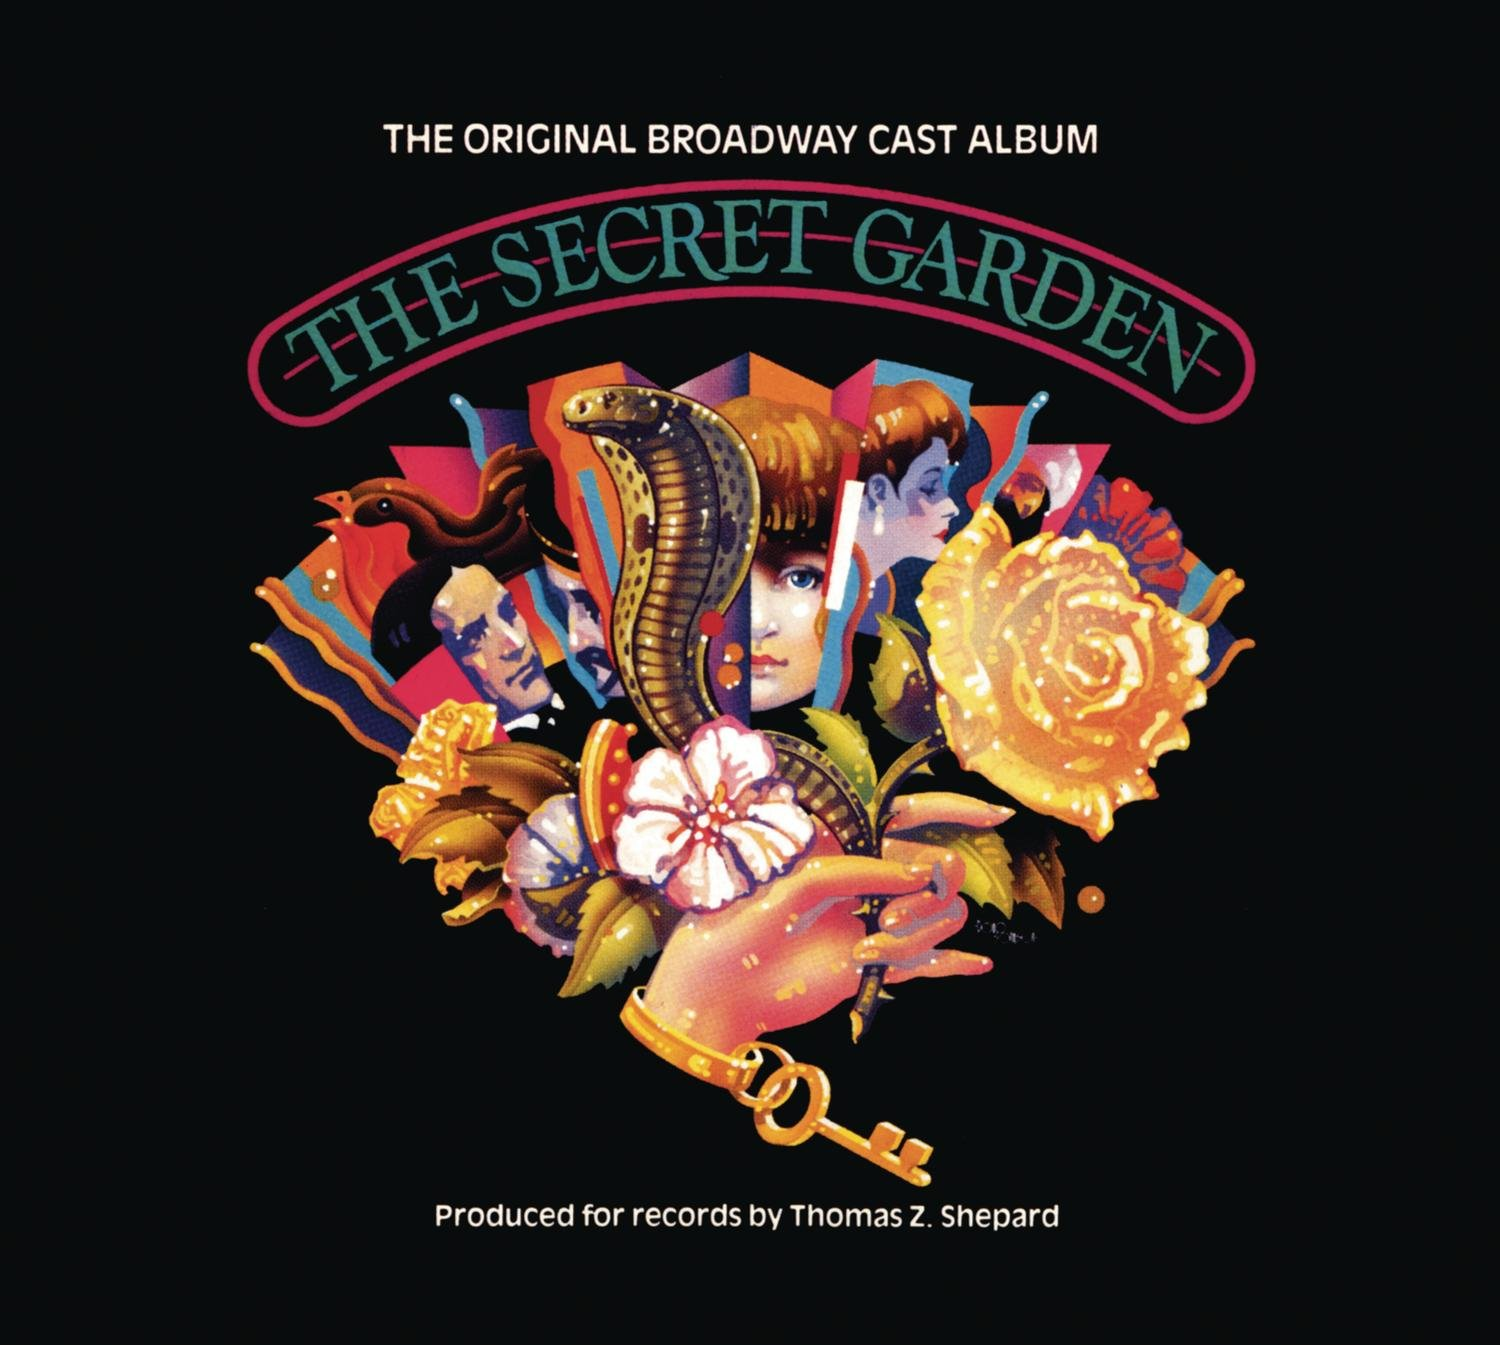 CD : Original London Cast - The Secret Garden (Ecopak - Biodegradable PKG)